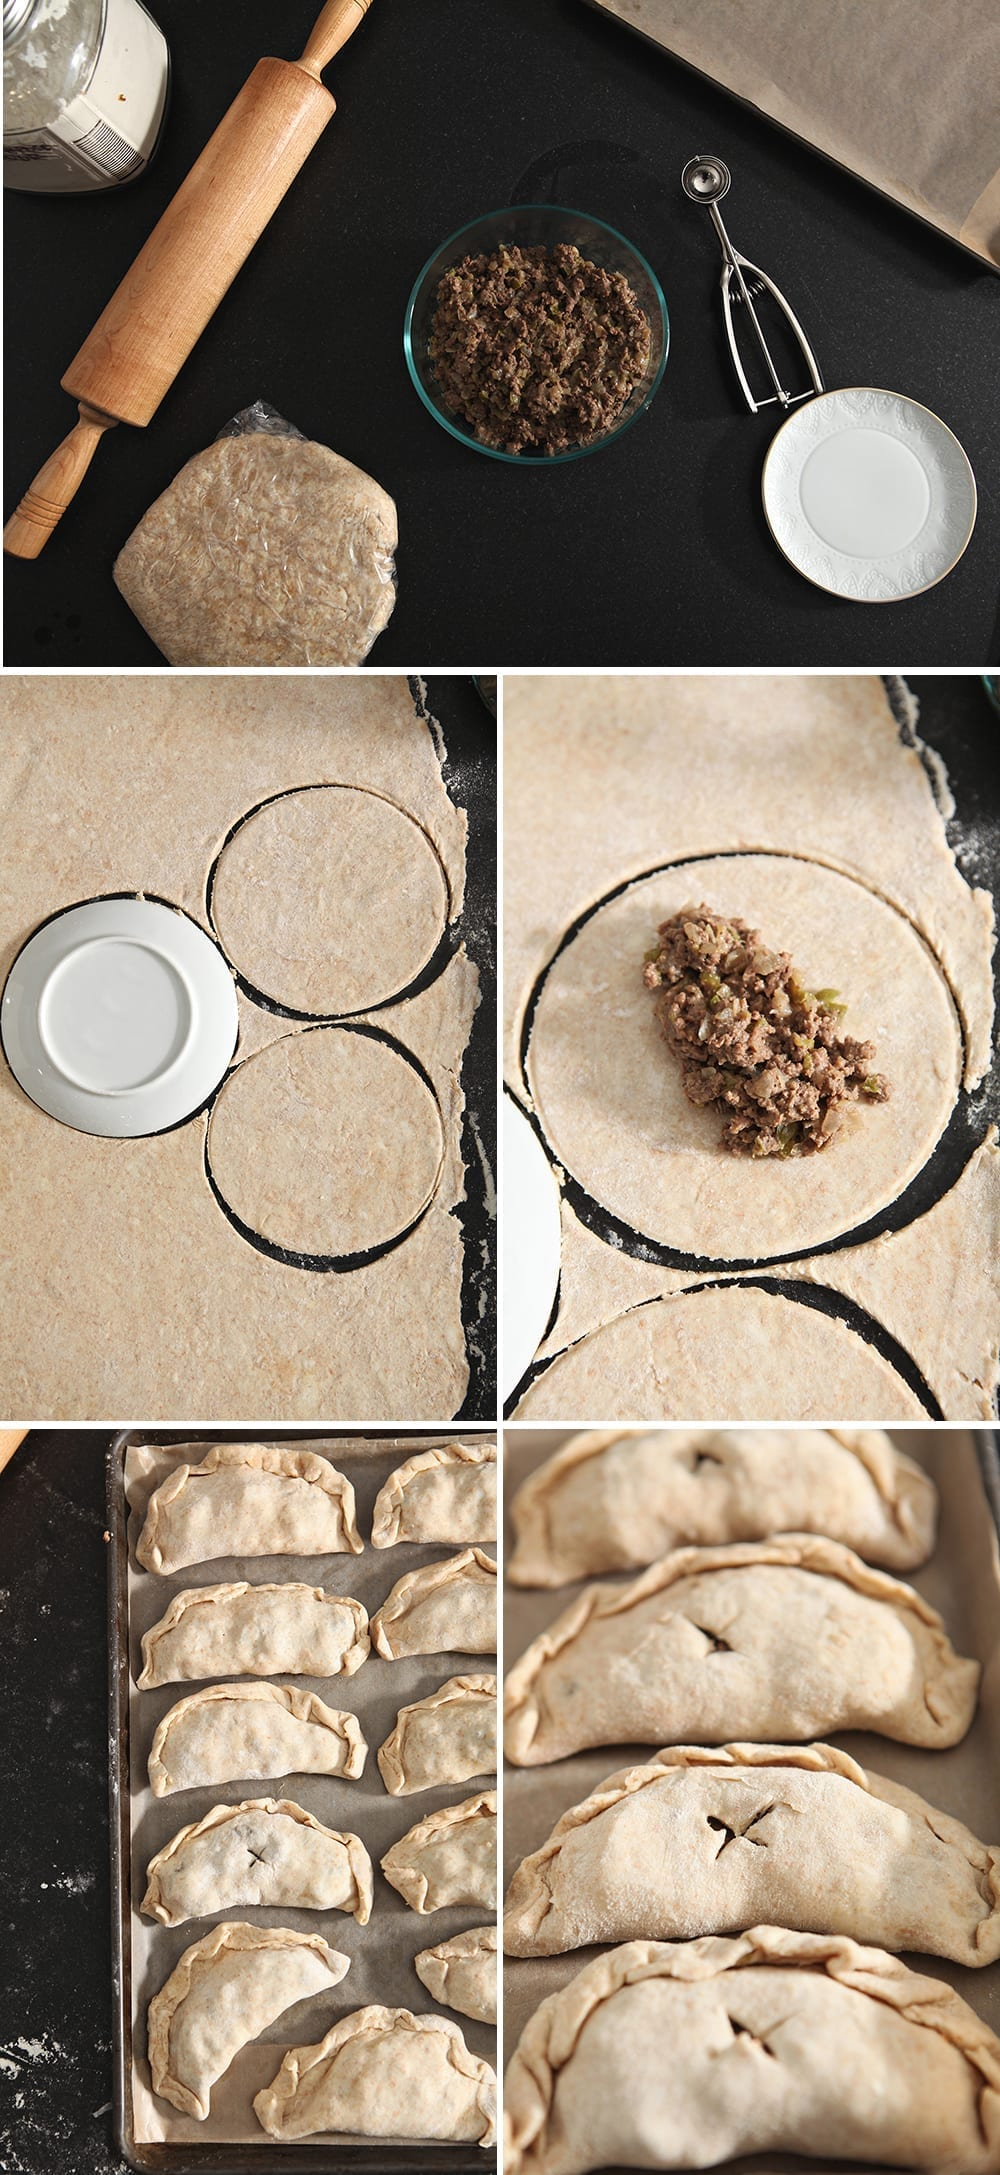 Collage showing how to put together the handheld pies before they go into the freezer